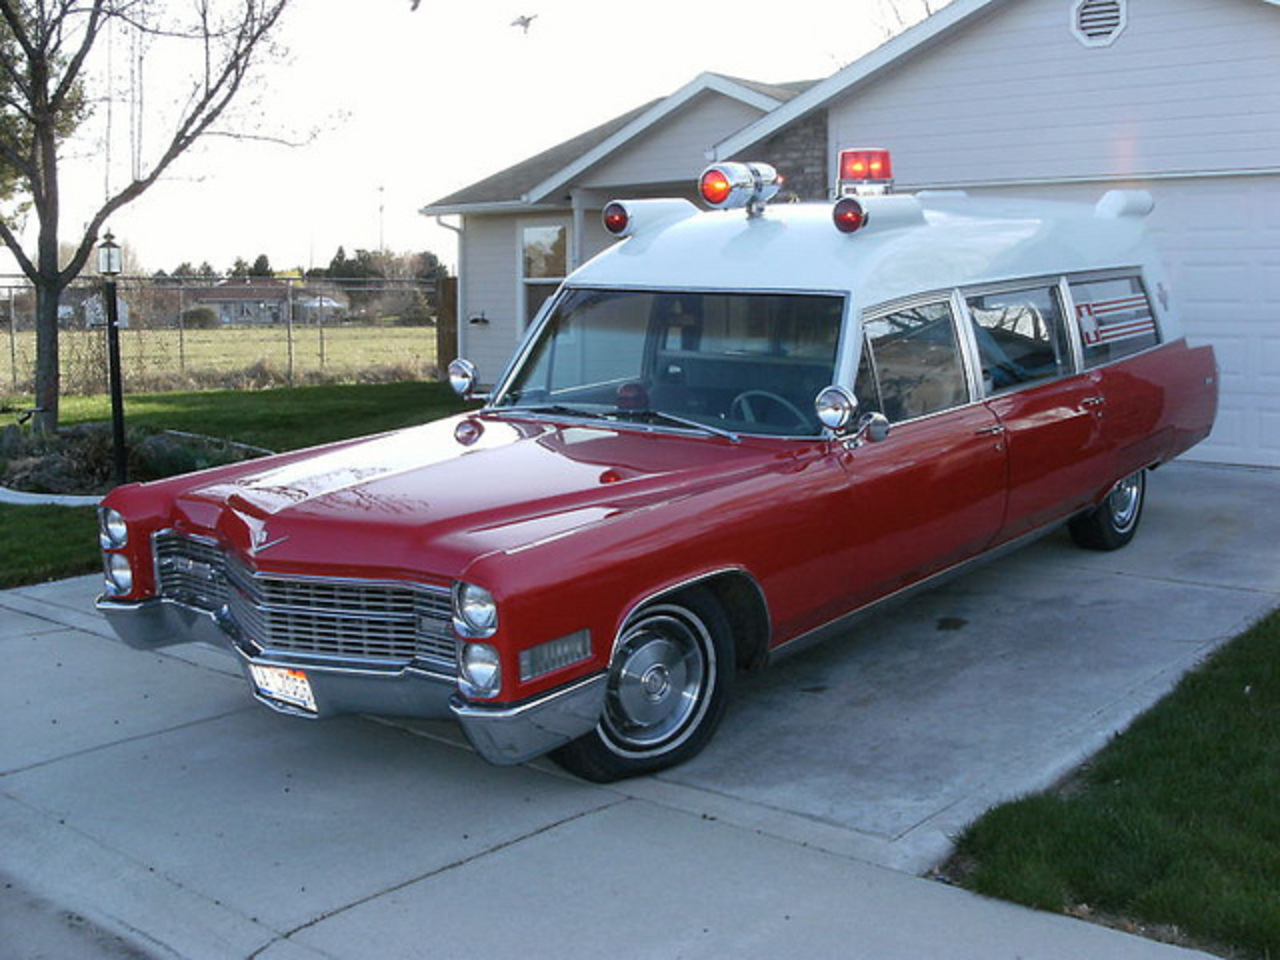 1966 Cadillac Ambulance by Miller Meteor | Flickr - Photo Sharing!